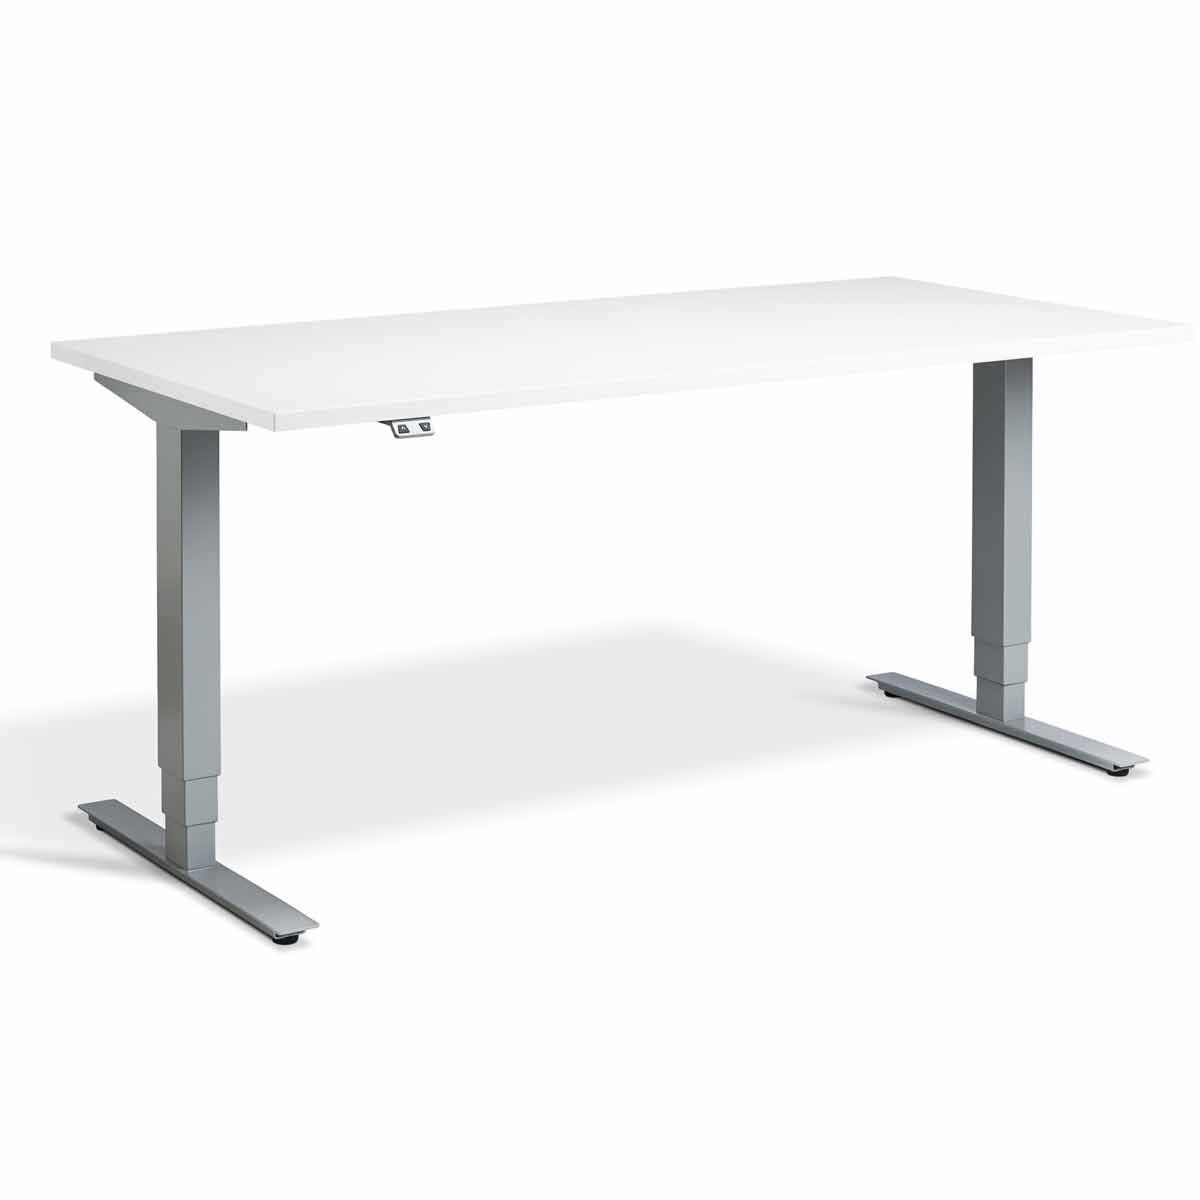 Lavoro Advance Dual Motor Height Adjustment Desk Silver Frame 1400 x 800